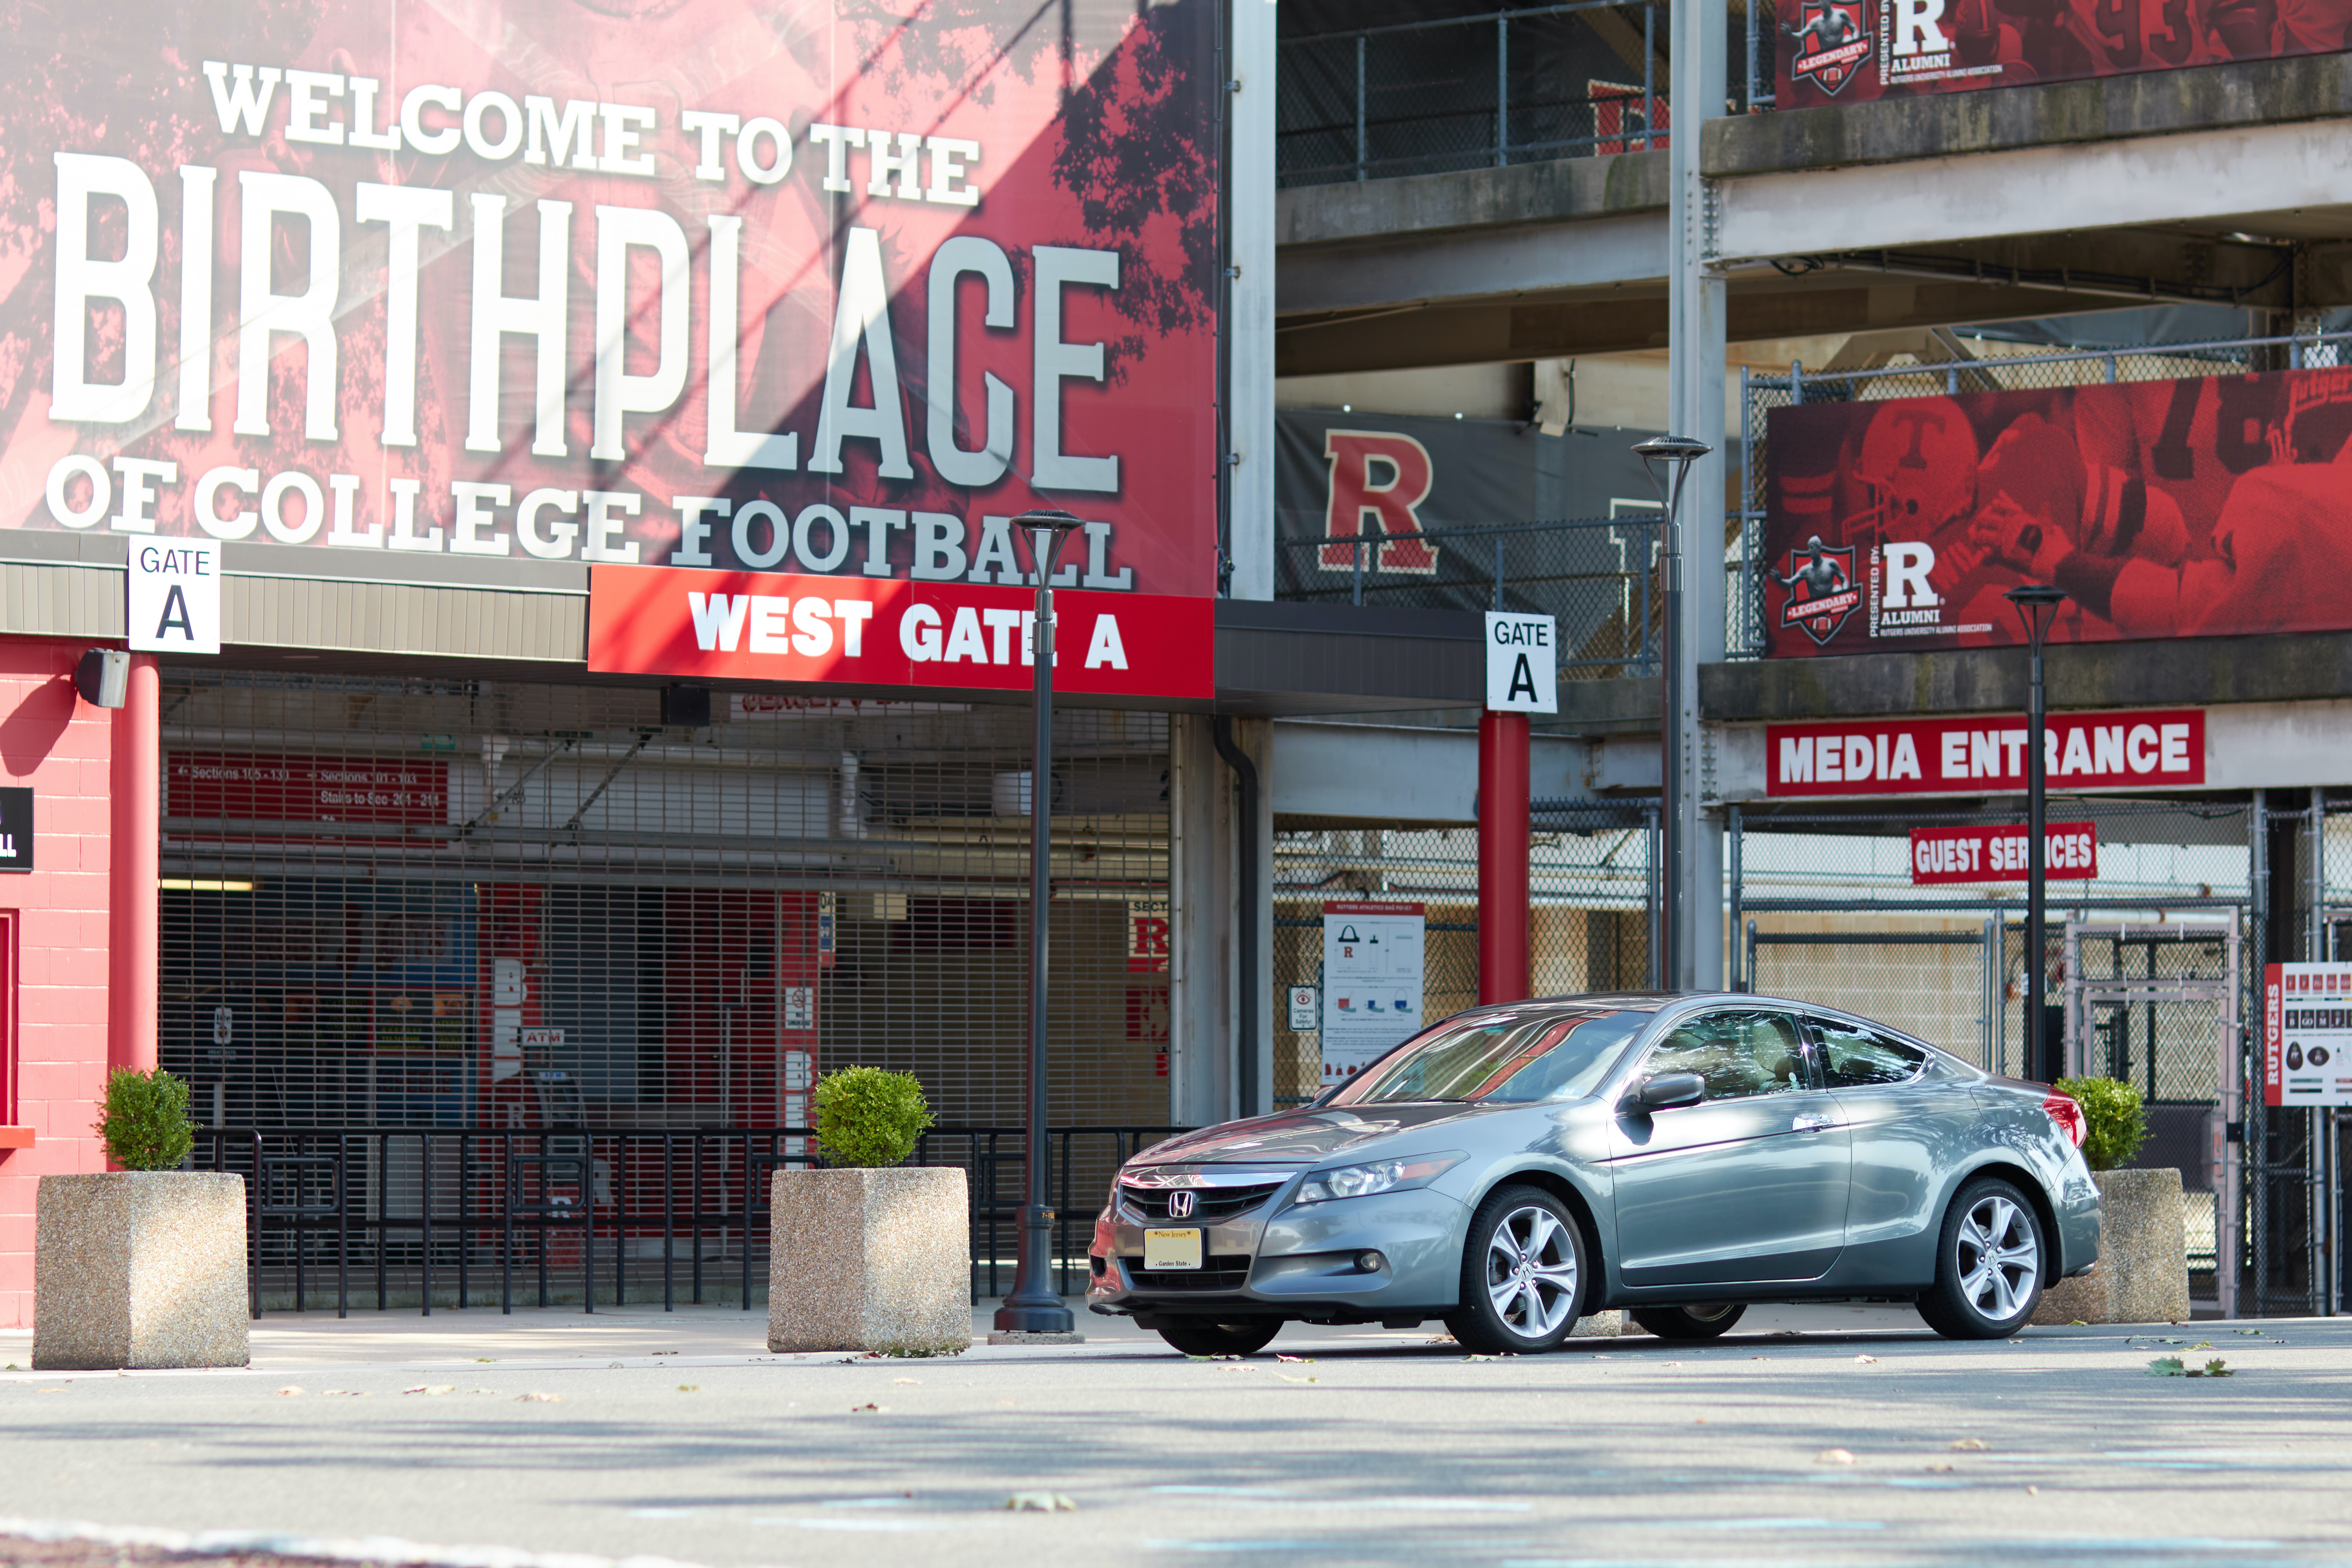 2012 Honda Accord parked in front of West Gate A at Shi Stadium.